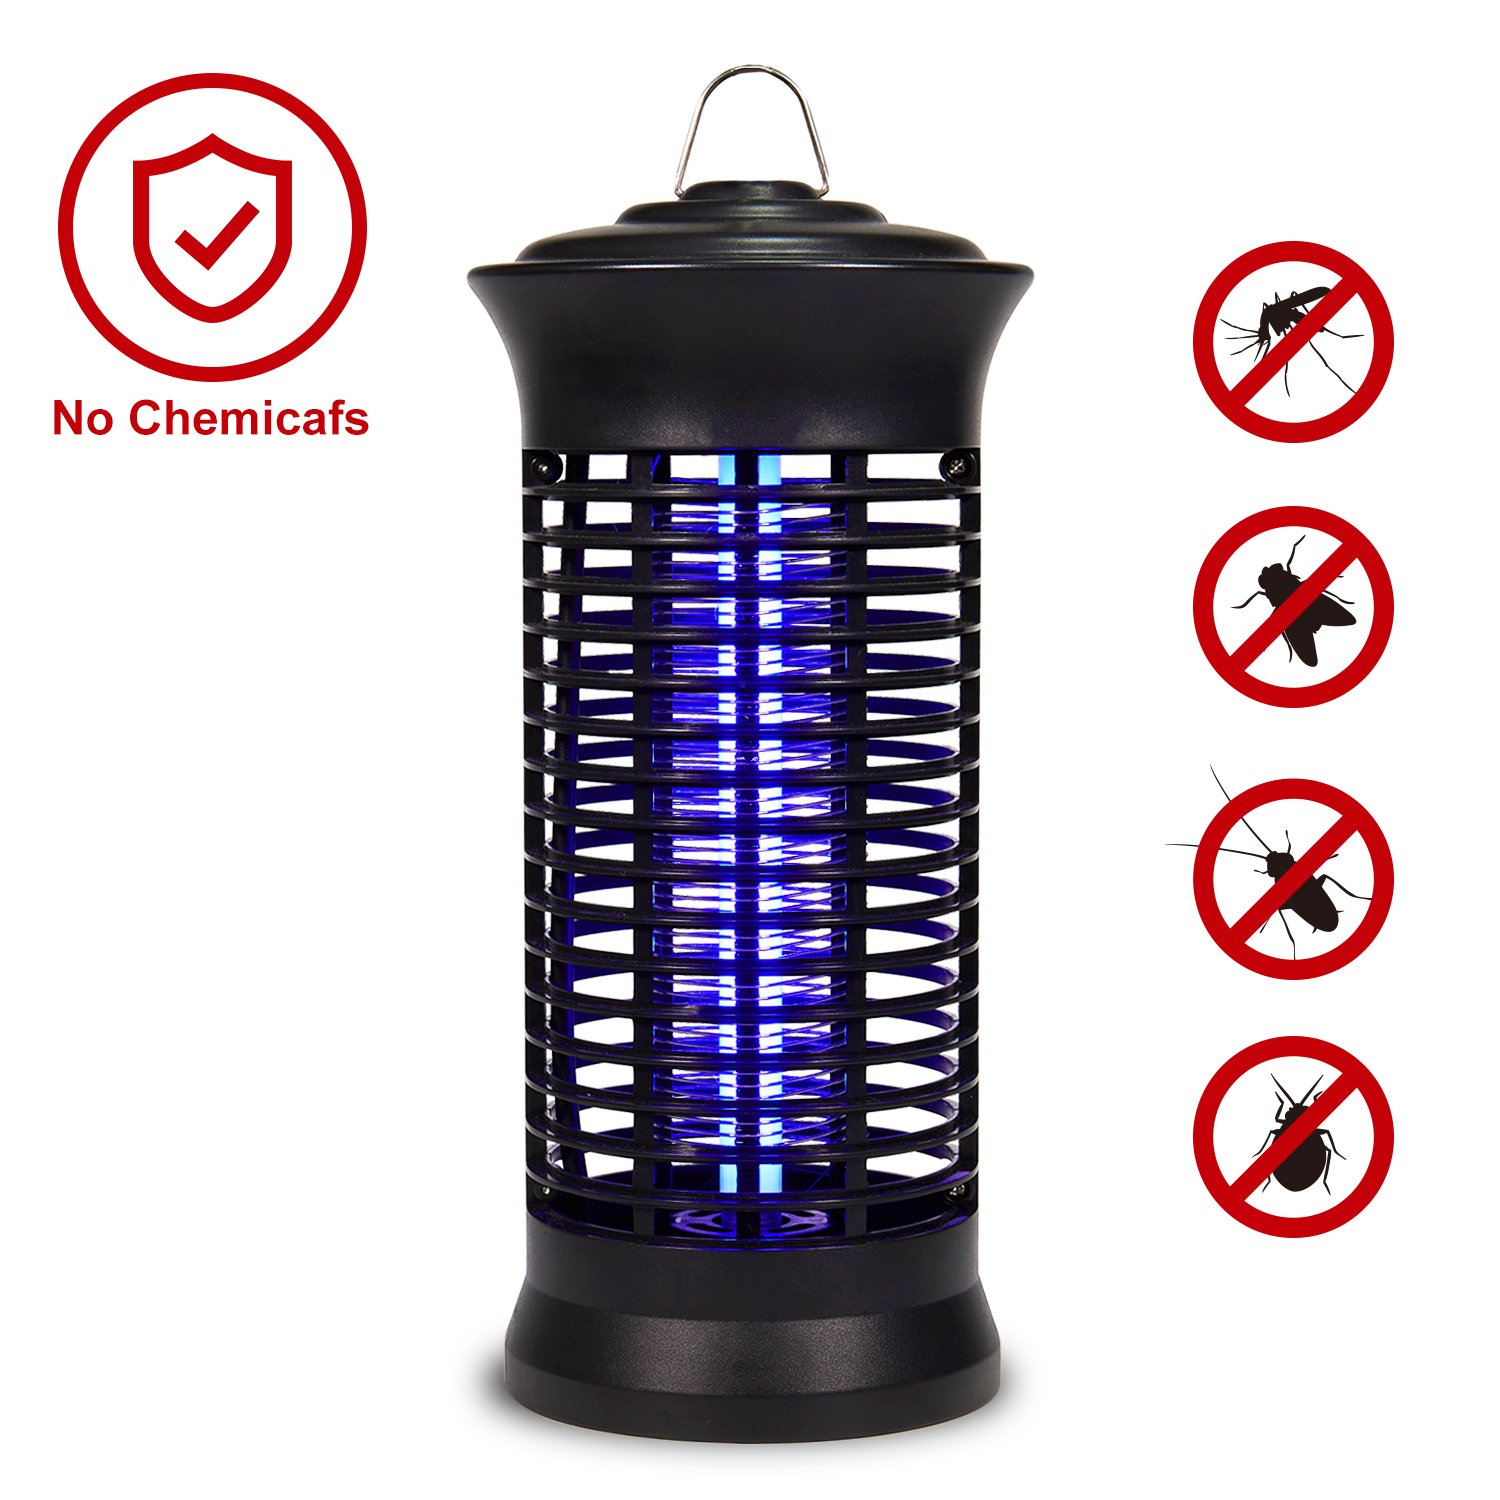 Electric Indoor Bug Zapper,Mosquito Killer, Insect and Fly Zapper Catcher Killer Trap with UV Bug Light with Large Coverage 100% Safety for Home, Office and Patio indoor use by AFBEST